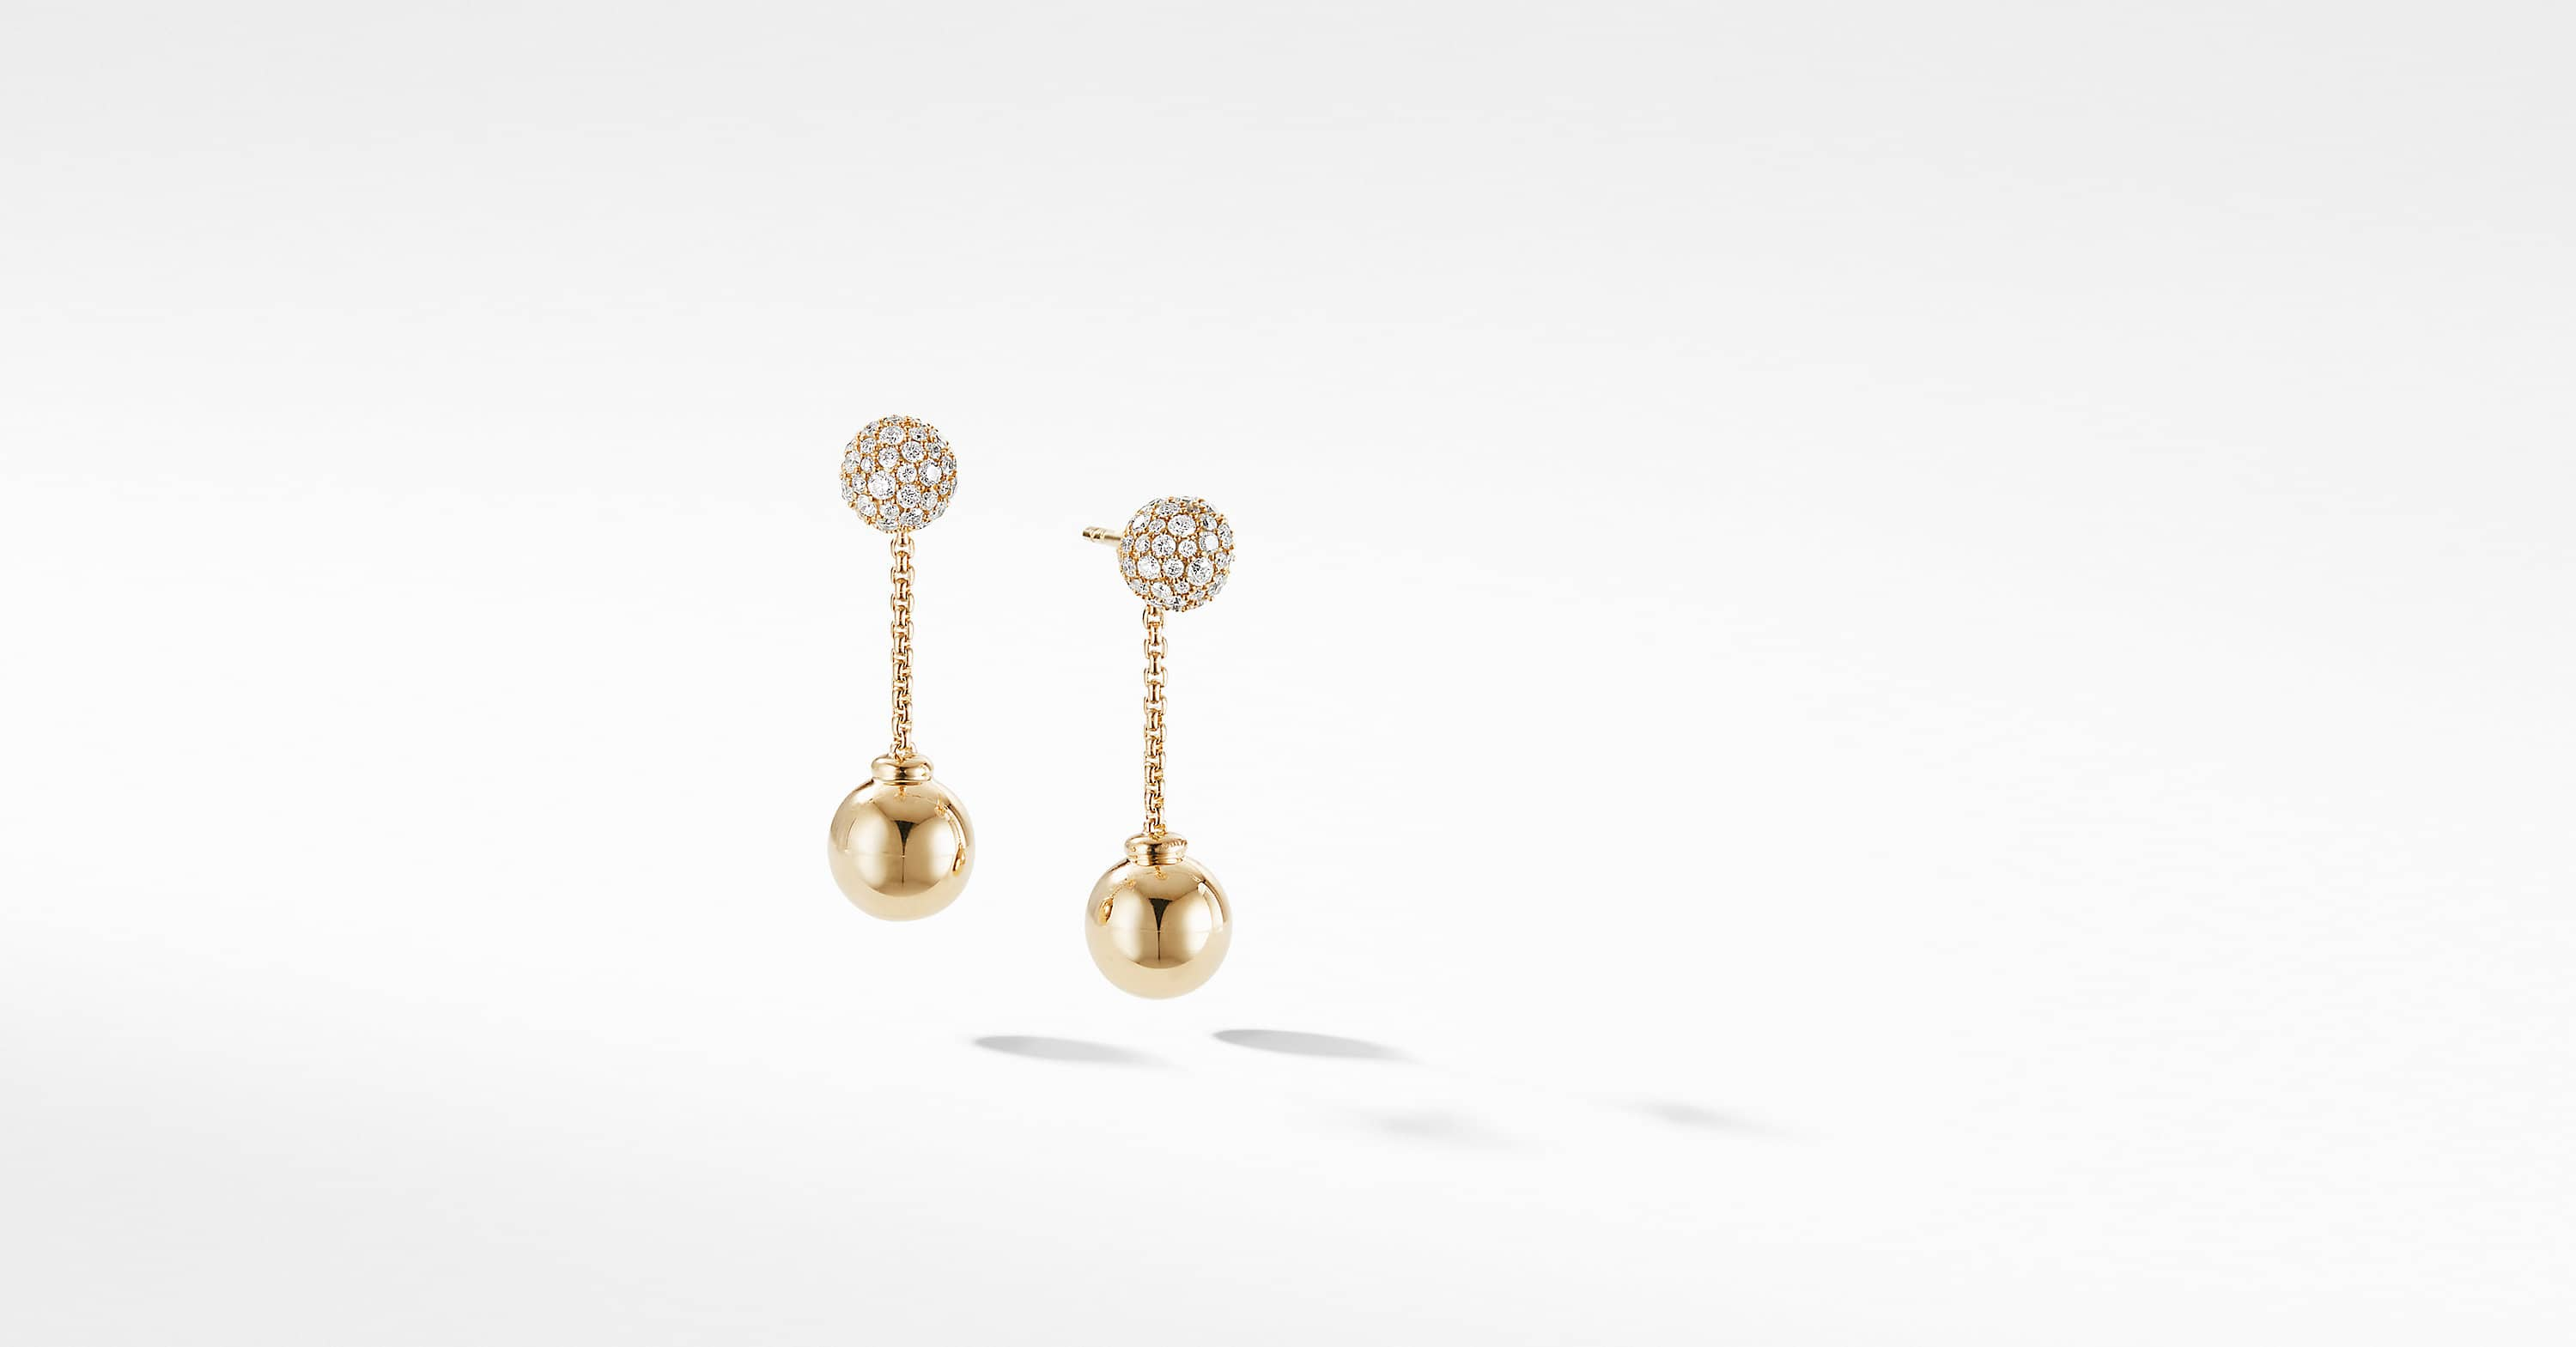 Solari Chain Drop Earring in 18K Yellow Gold with Diamonds